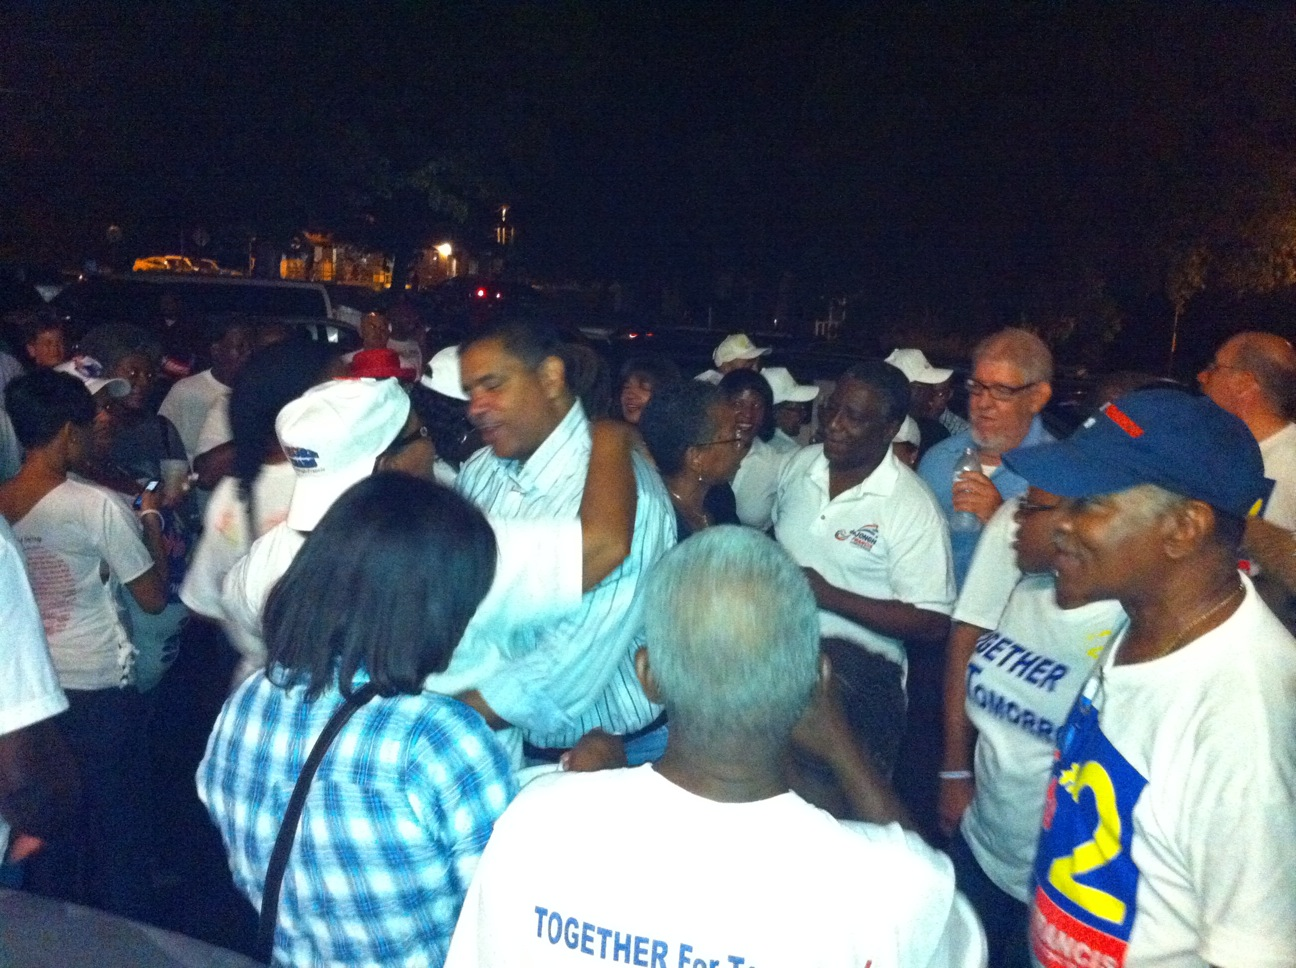 Gov. John deJongh Jr. and Lt. Gov. Gregory R. Francis celebrate winning the 2010 primary with supporters on St. Croix.